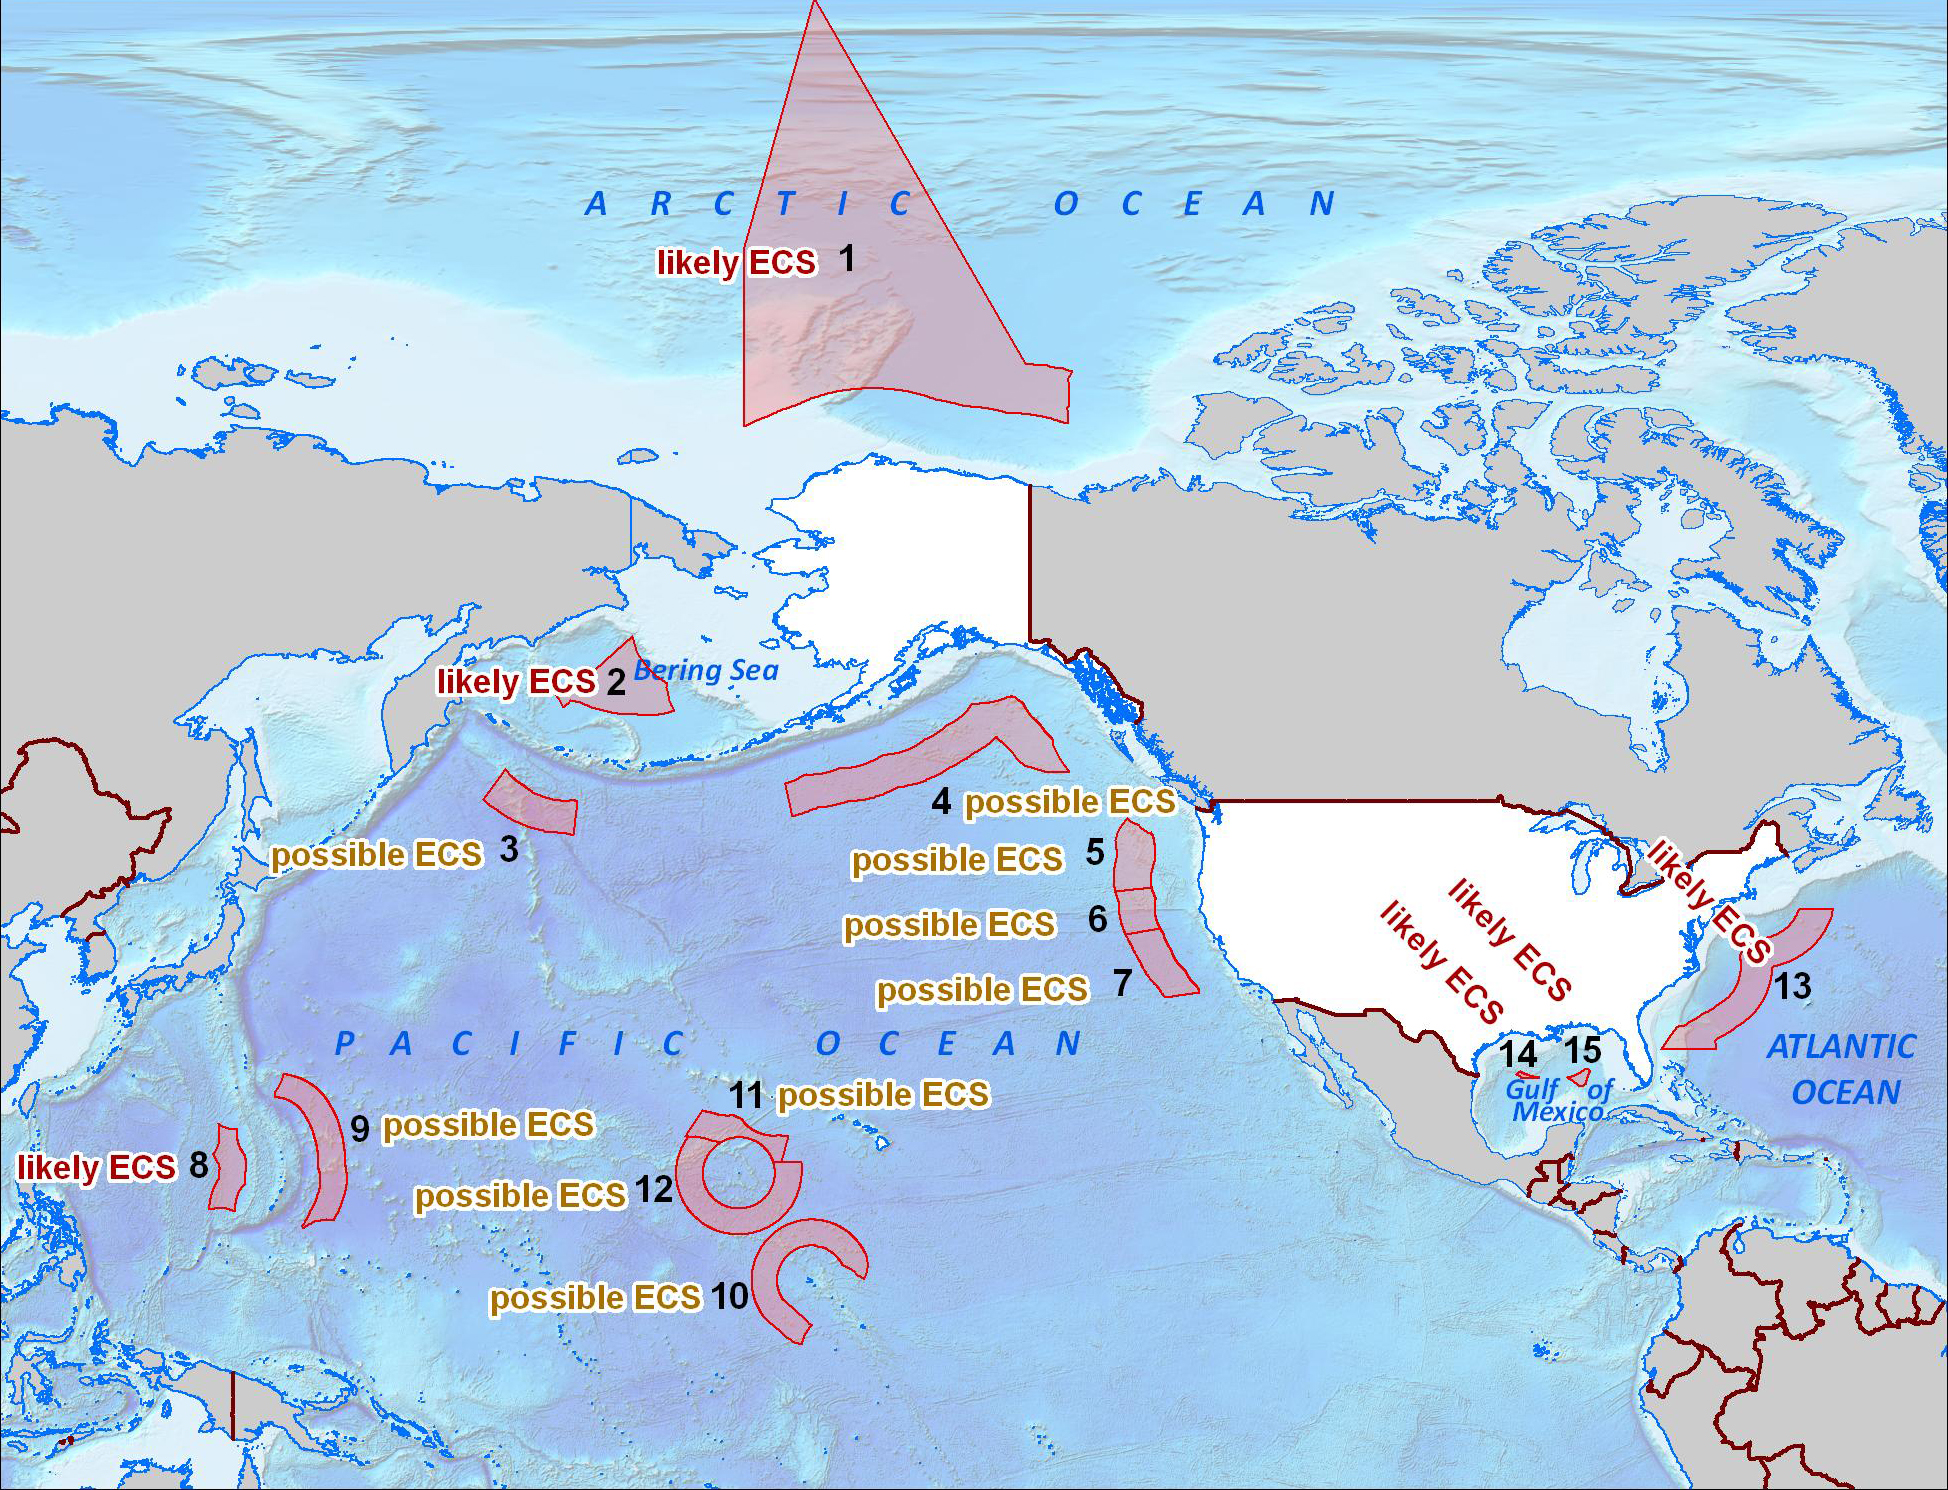 The shaded area on this map illustrates where the U.S. is considering collecting and analyzing data and does not represent the official U.S. Government position on where it has extended continental shelf. This map is without prejudice to boundary depictions and future negotiations. Credit: continentalshelf.gov